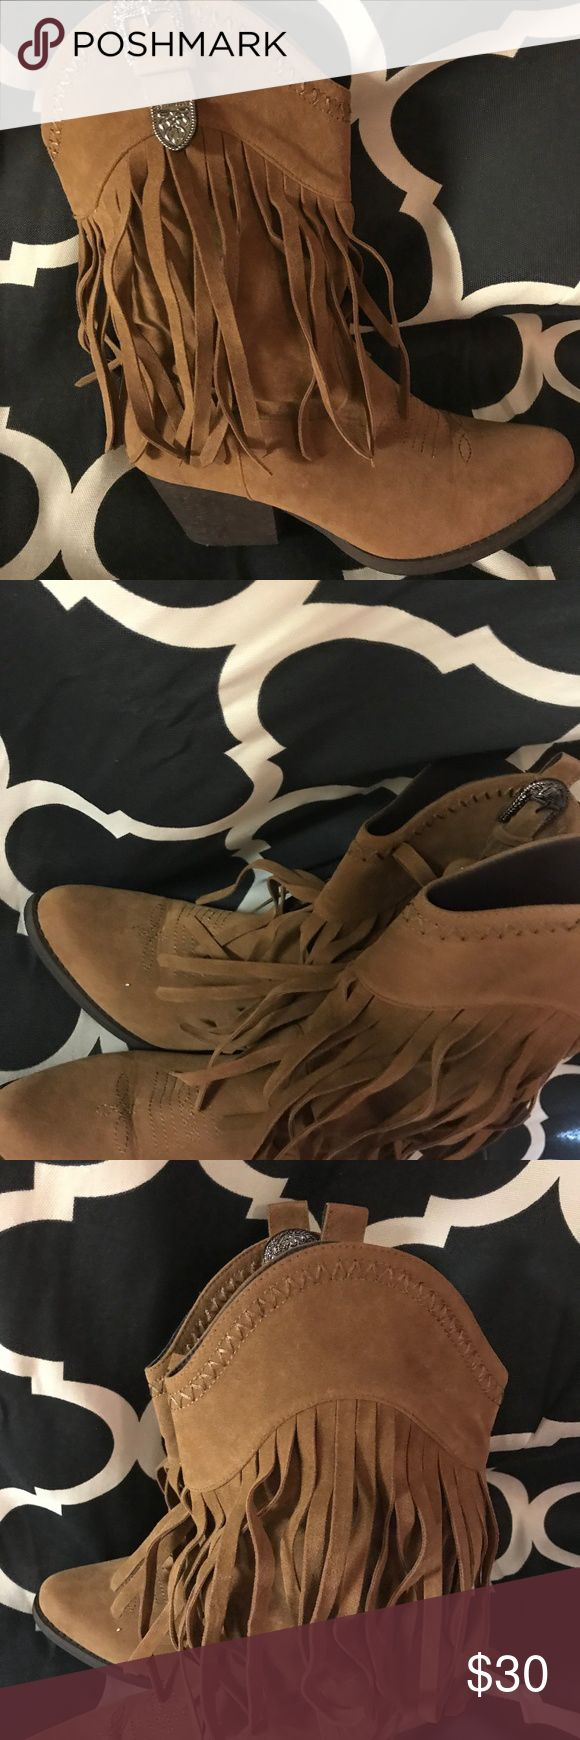 Pierre Dumas Fringe cowboy boots size 7 Excellent condition! Only has been worn a few times! Pierre Dumas Shoes Heeled Boots